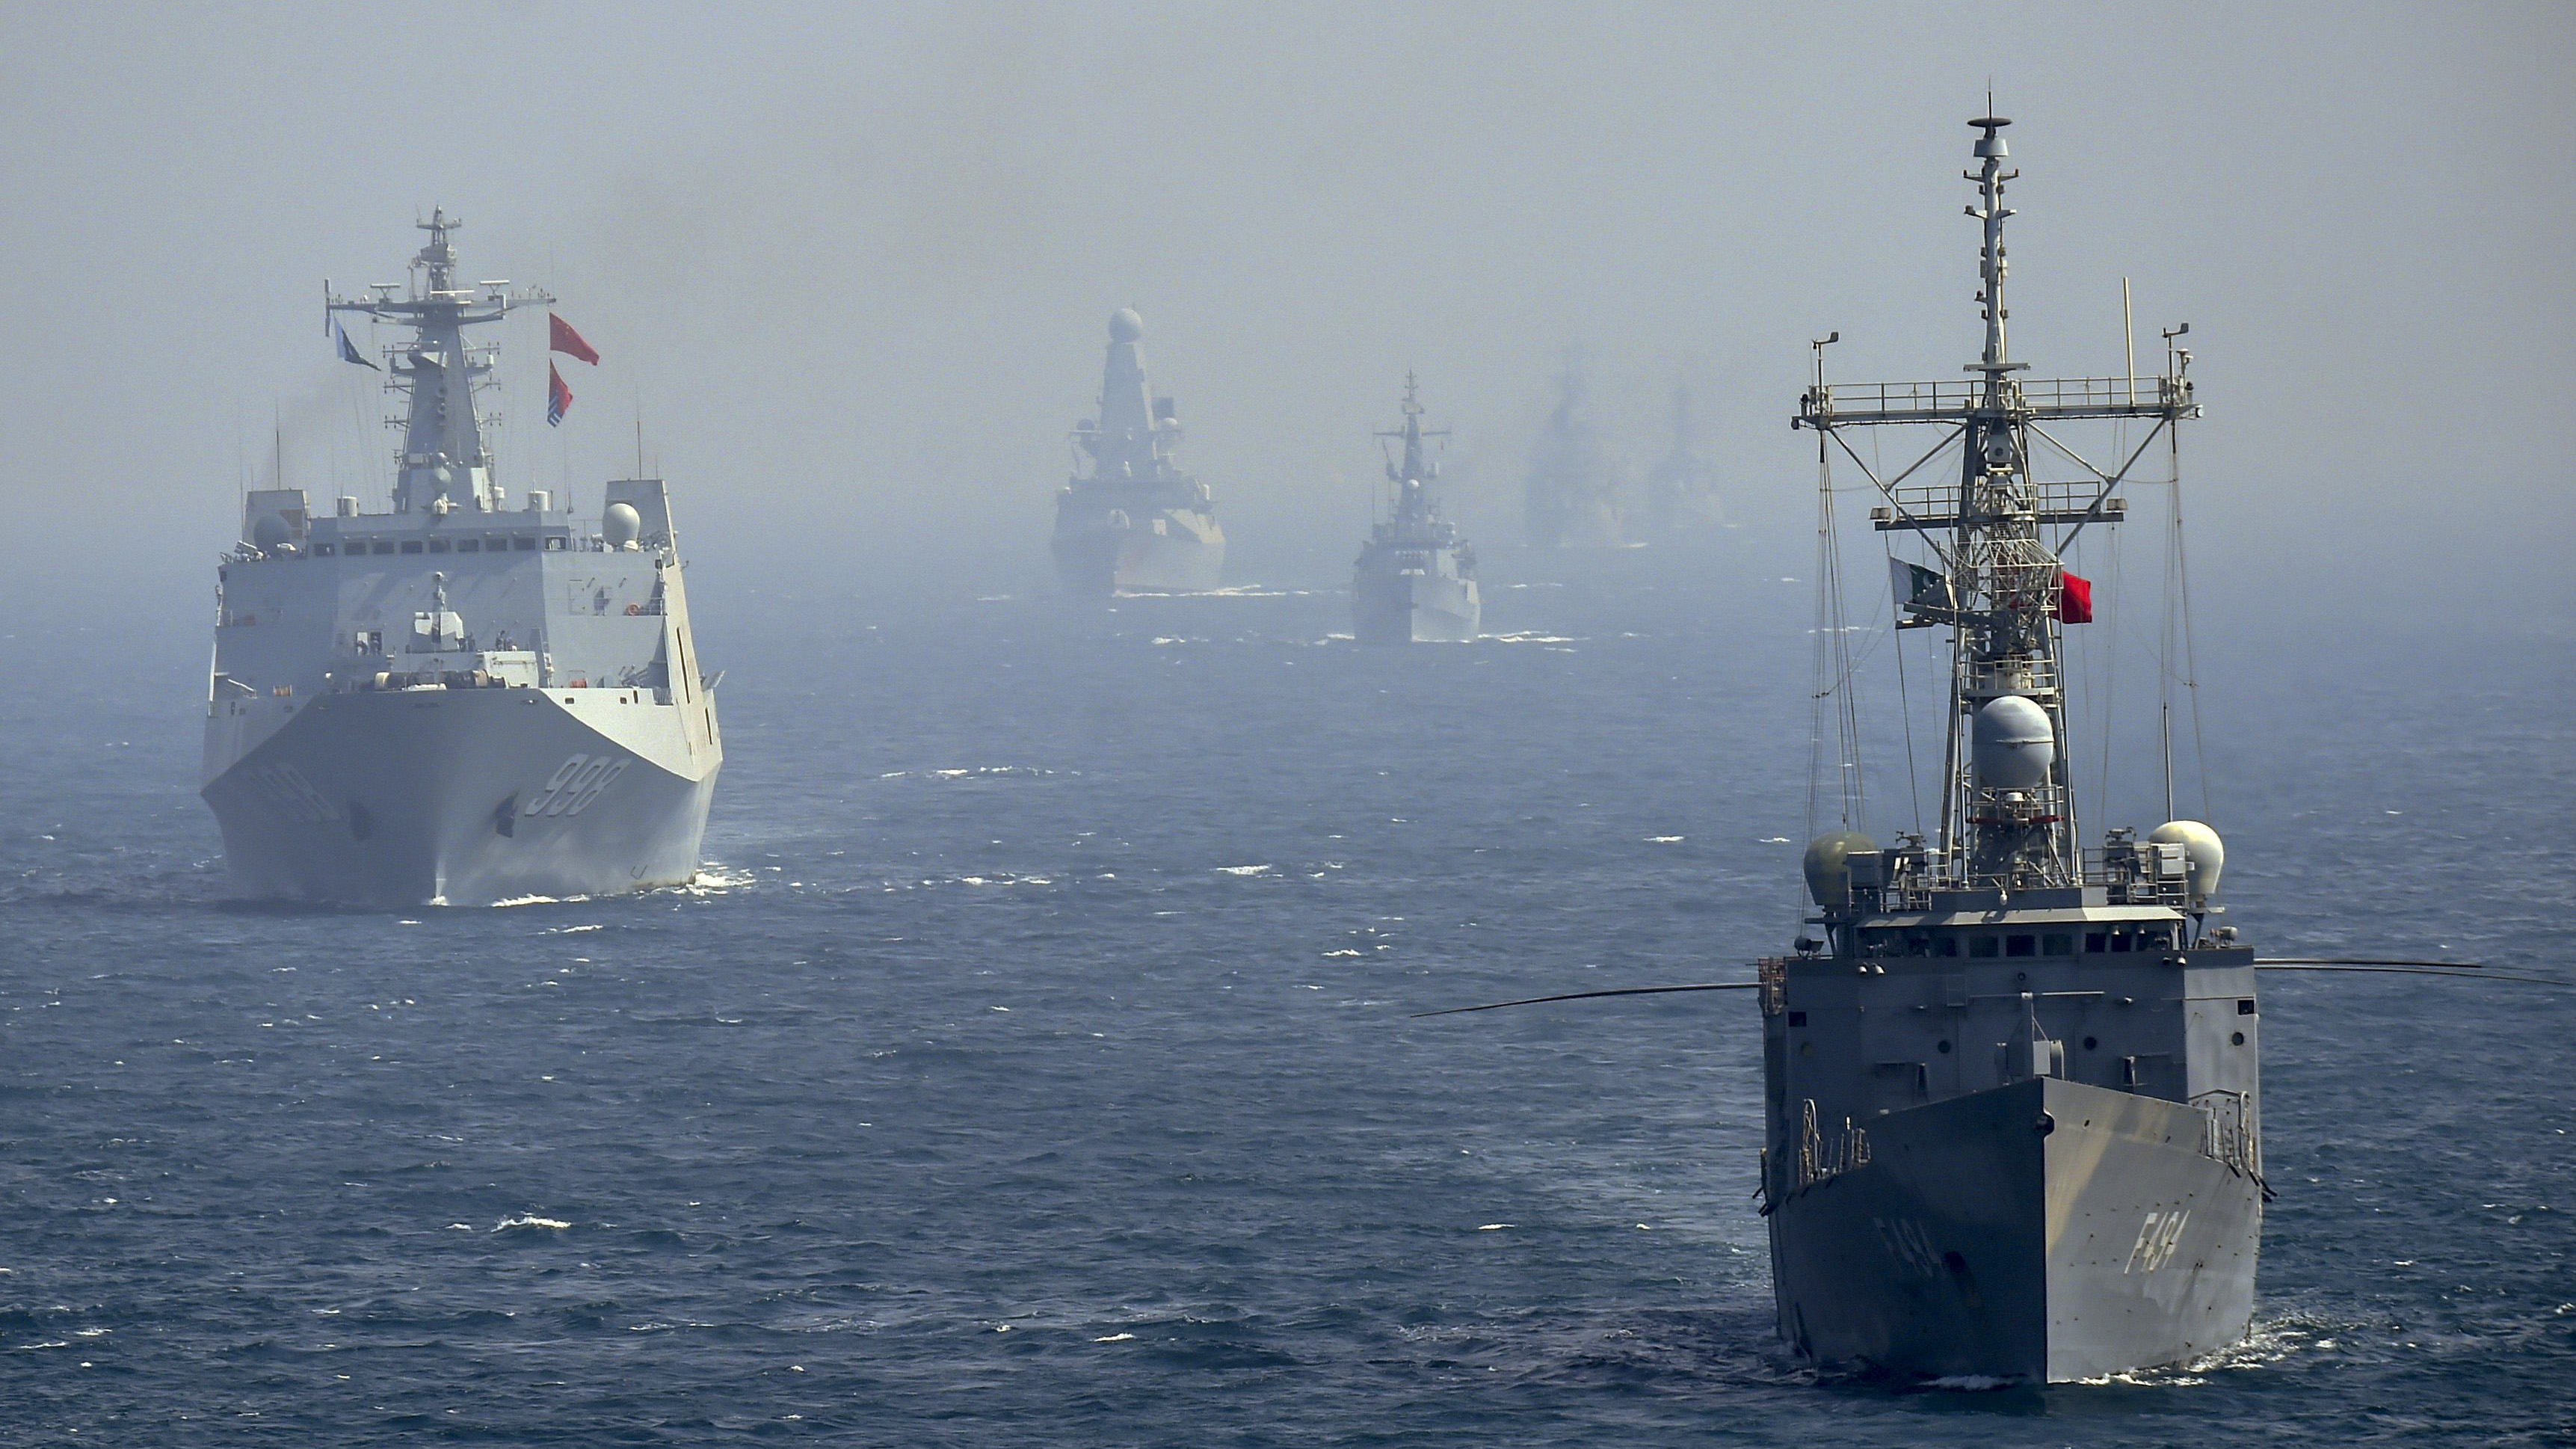 Naval ships from Turkey (R) and China (L) take part in the multinational naval exercises 'AMAN-19' in the Arabian Sea near Pakistan's port city of Karachi on February 11, 2019. - Exercise Aman took place from February 8-12, with some 45 countries participating with ships and observers. (ASIF HASSAN/AFP/Getty Images)